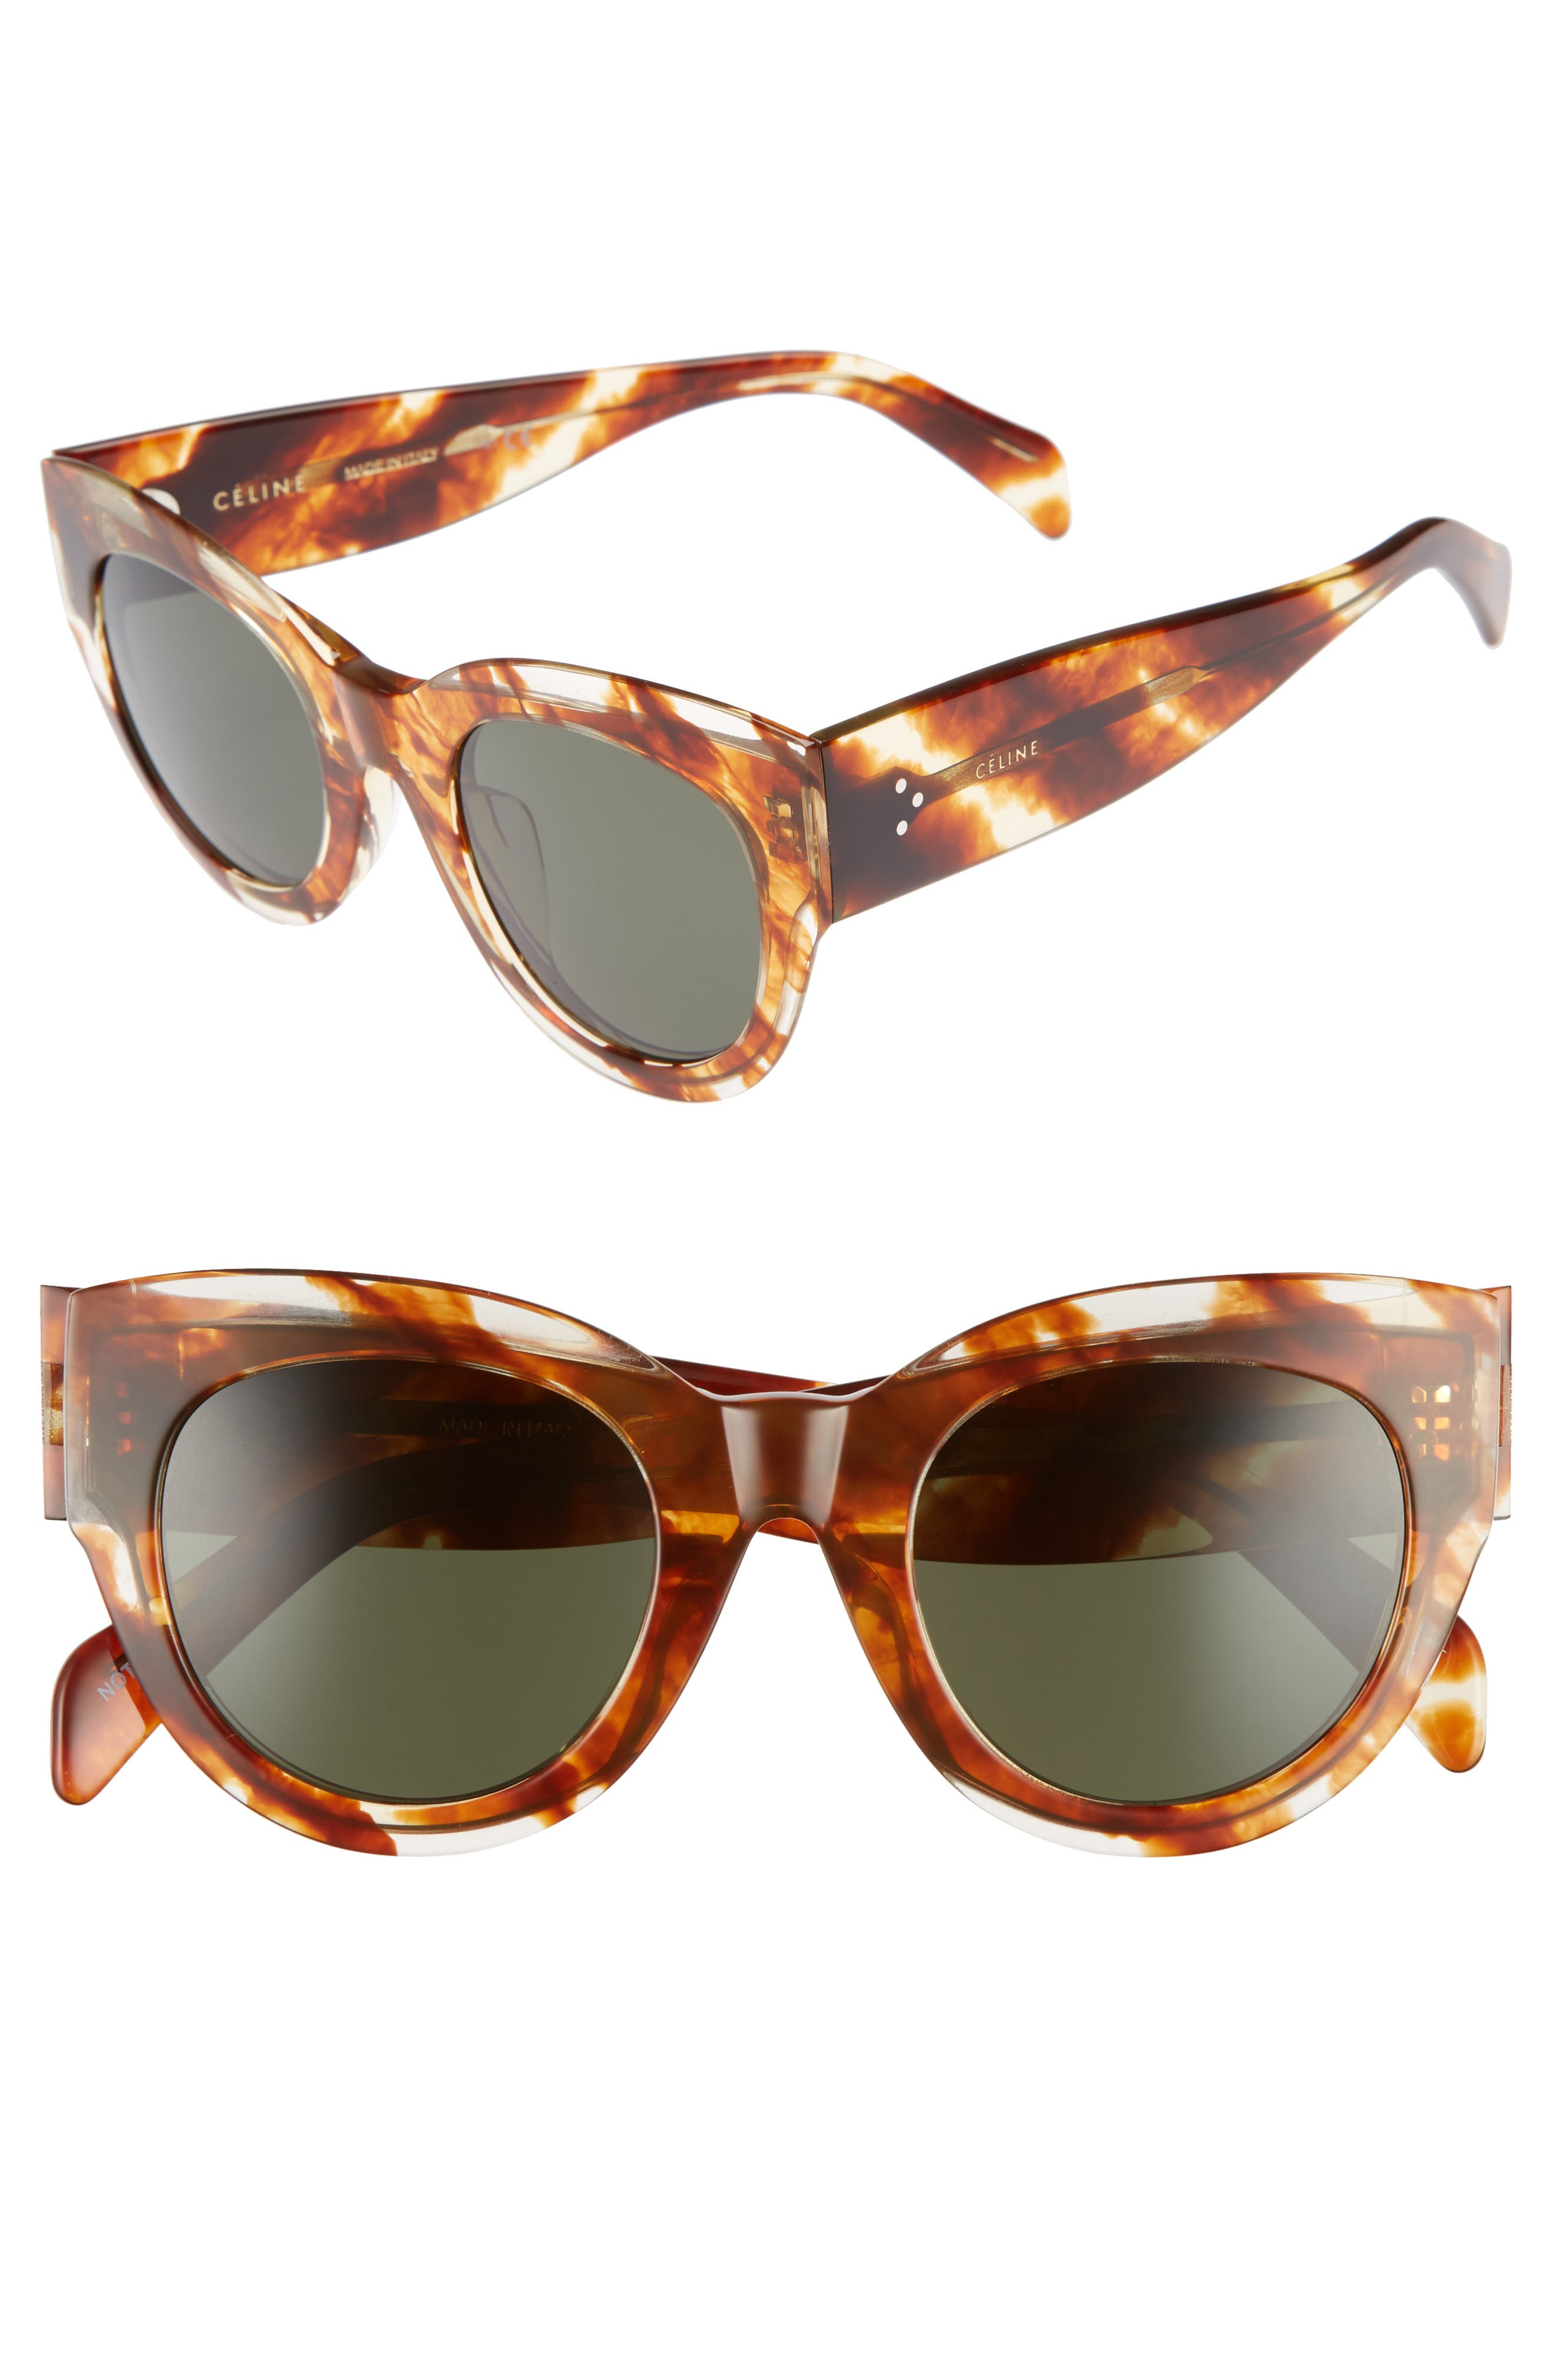 Special Fit 50mm Cat Eye Sunglasses,                         Main,                         color, STRIPED COGNAC HAVANA/ GREEN